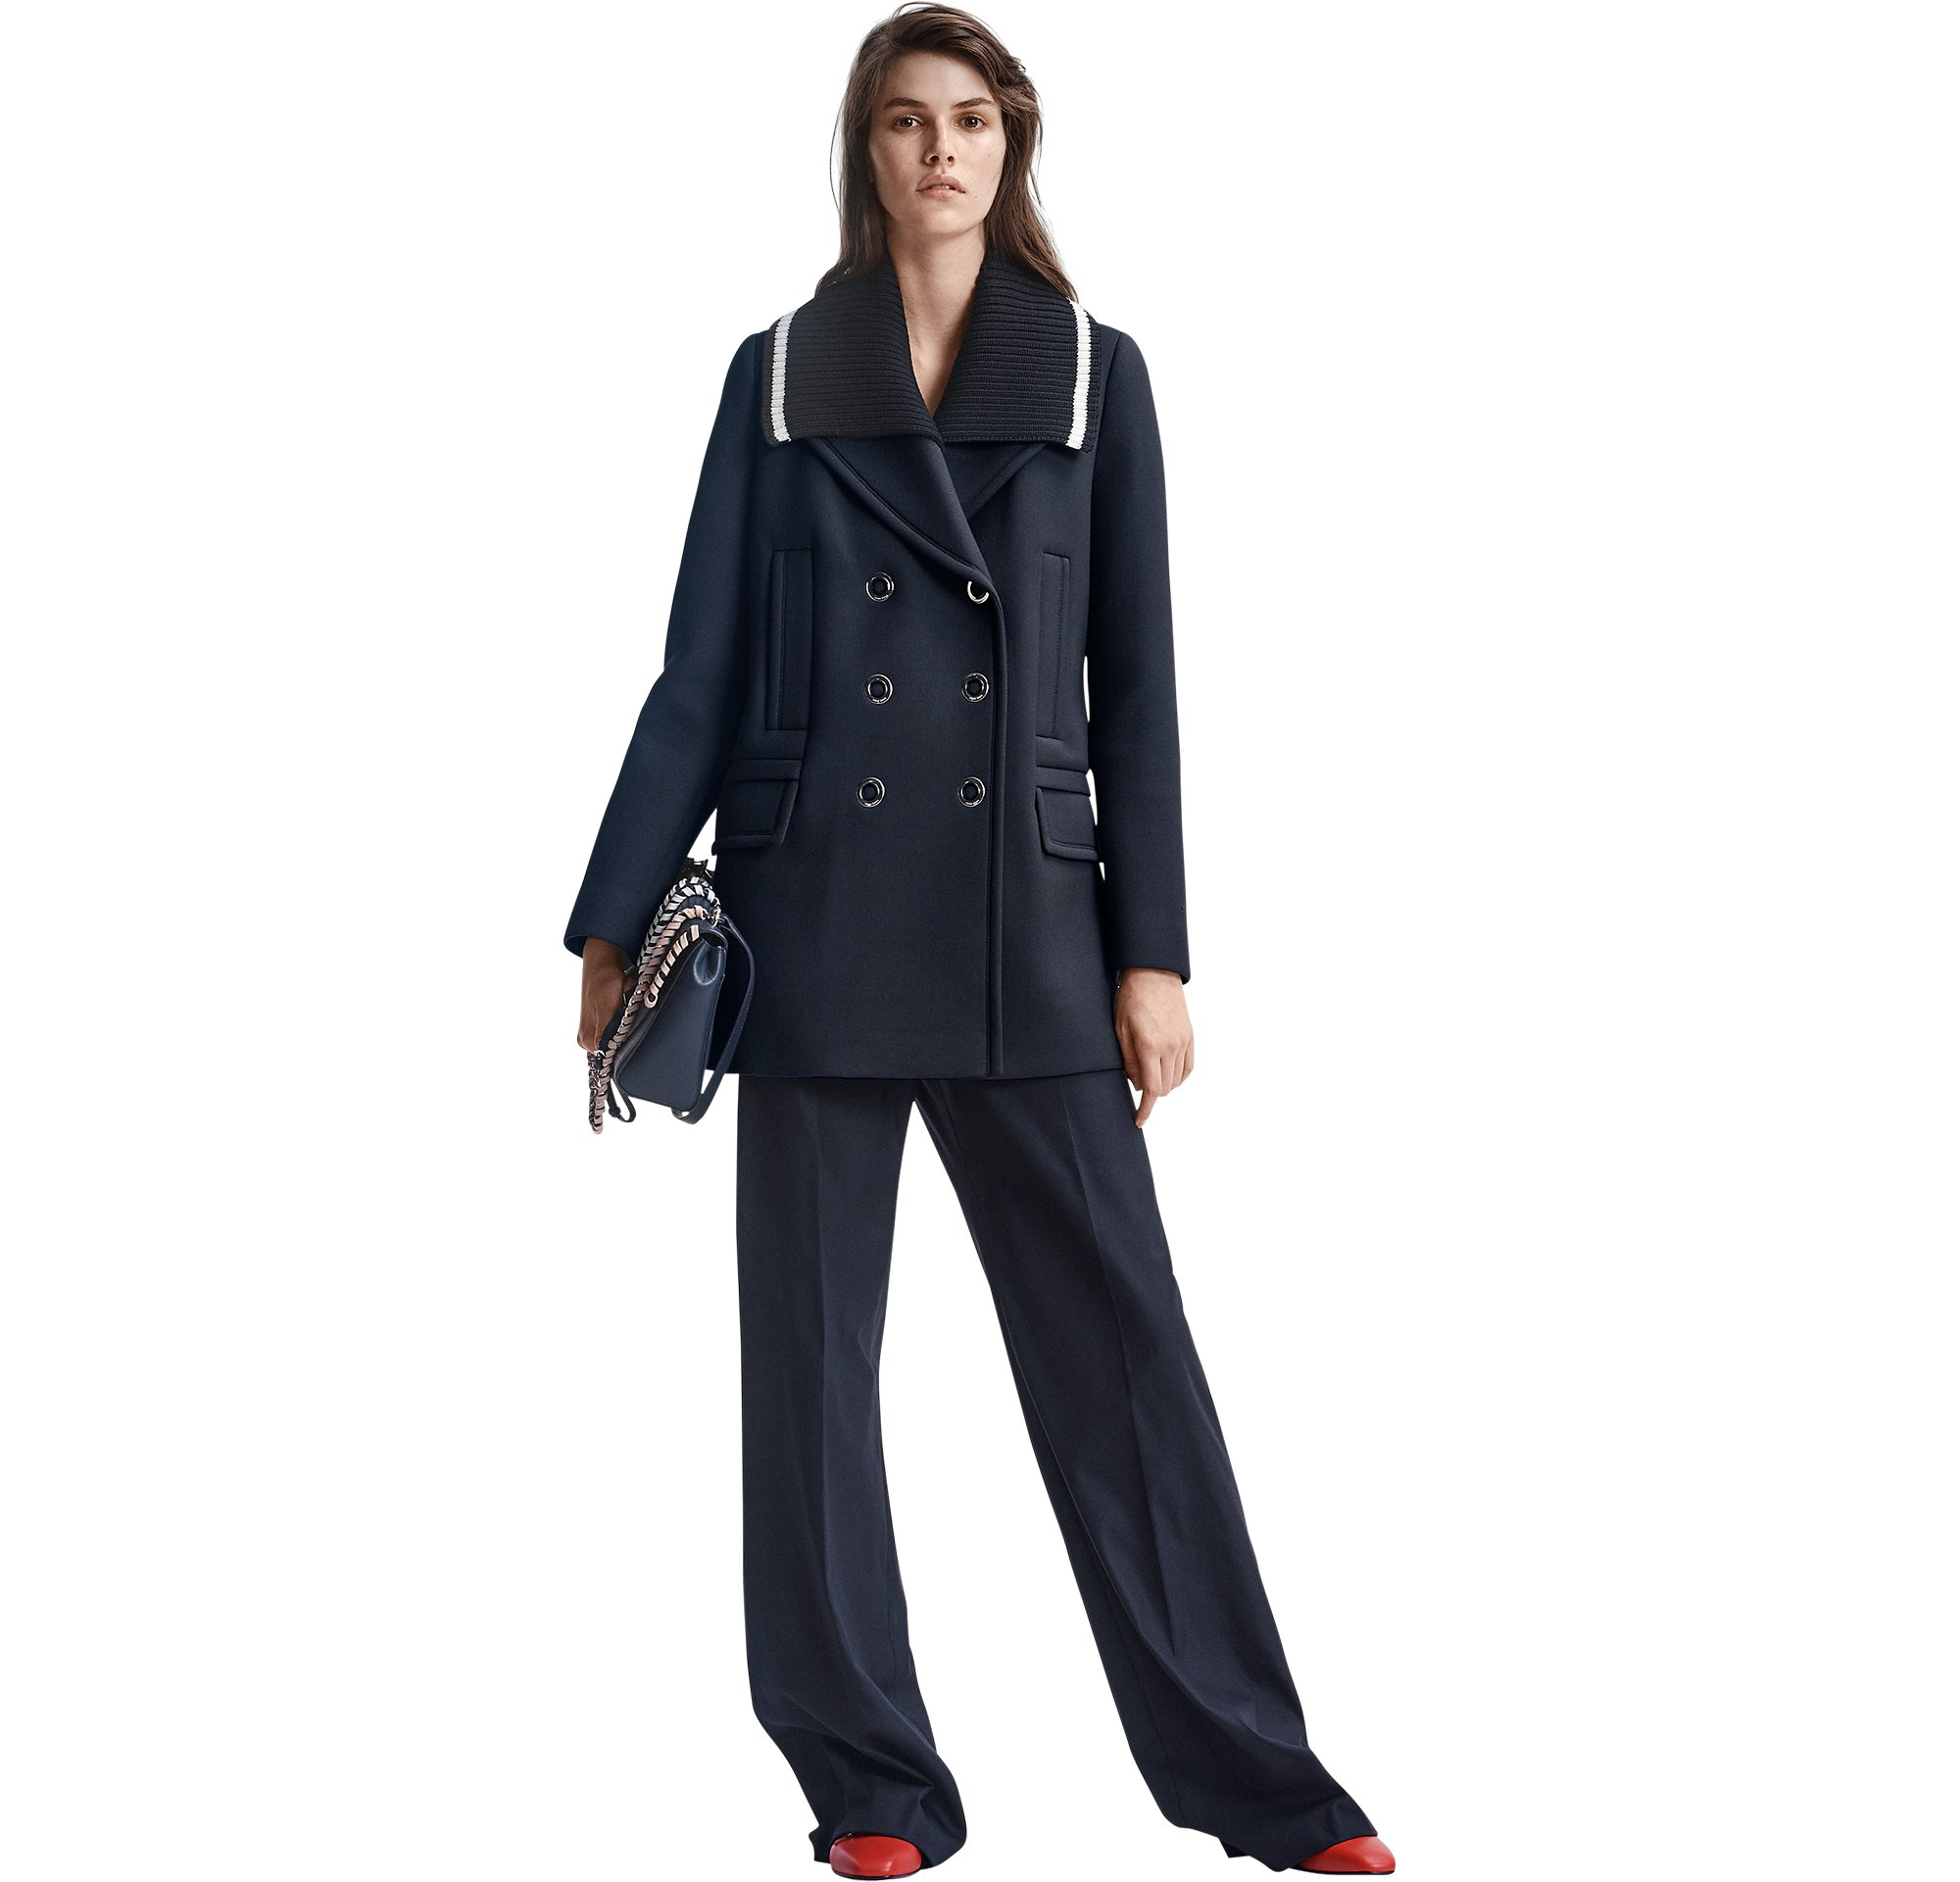 BOSS_Women_SR18_Look_15,